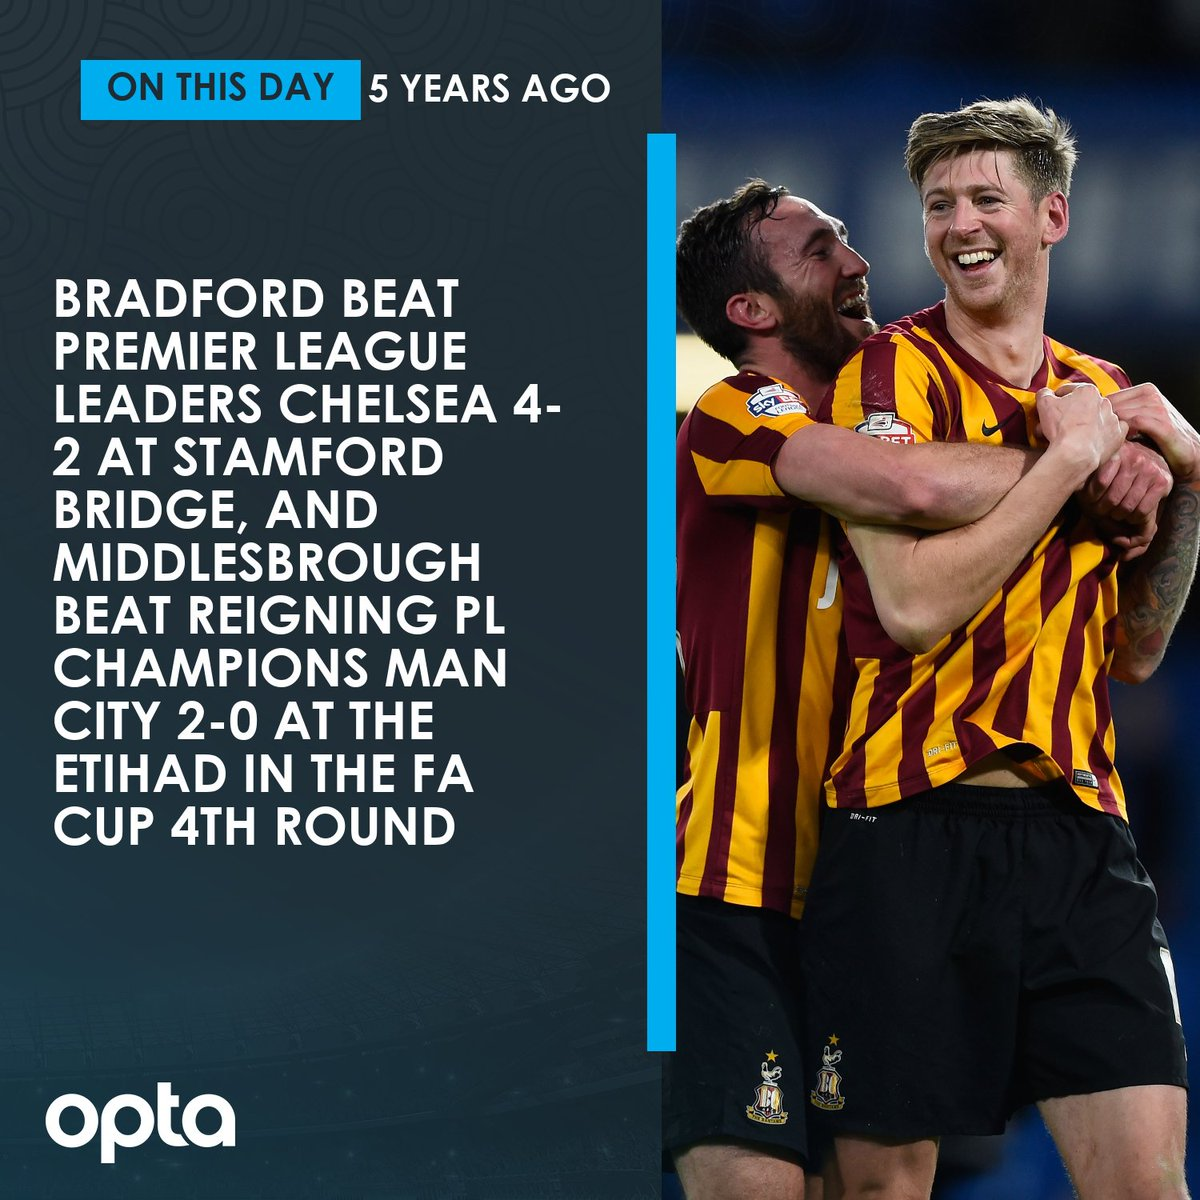 24/01 - On this day in 2015, Bradford stun Chelsea by coming from 2-0 down to win 4-2 at Stamford Bridge, while Middlesbrough beat Man City 2-0 at the Etihad in a day of FA Cup fourth round shocks. Underdogs.